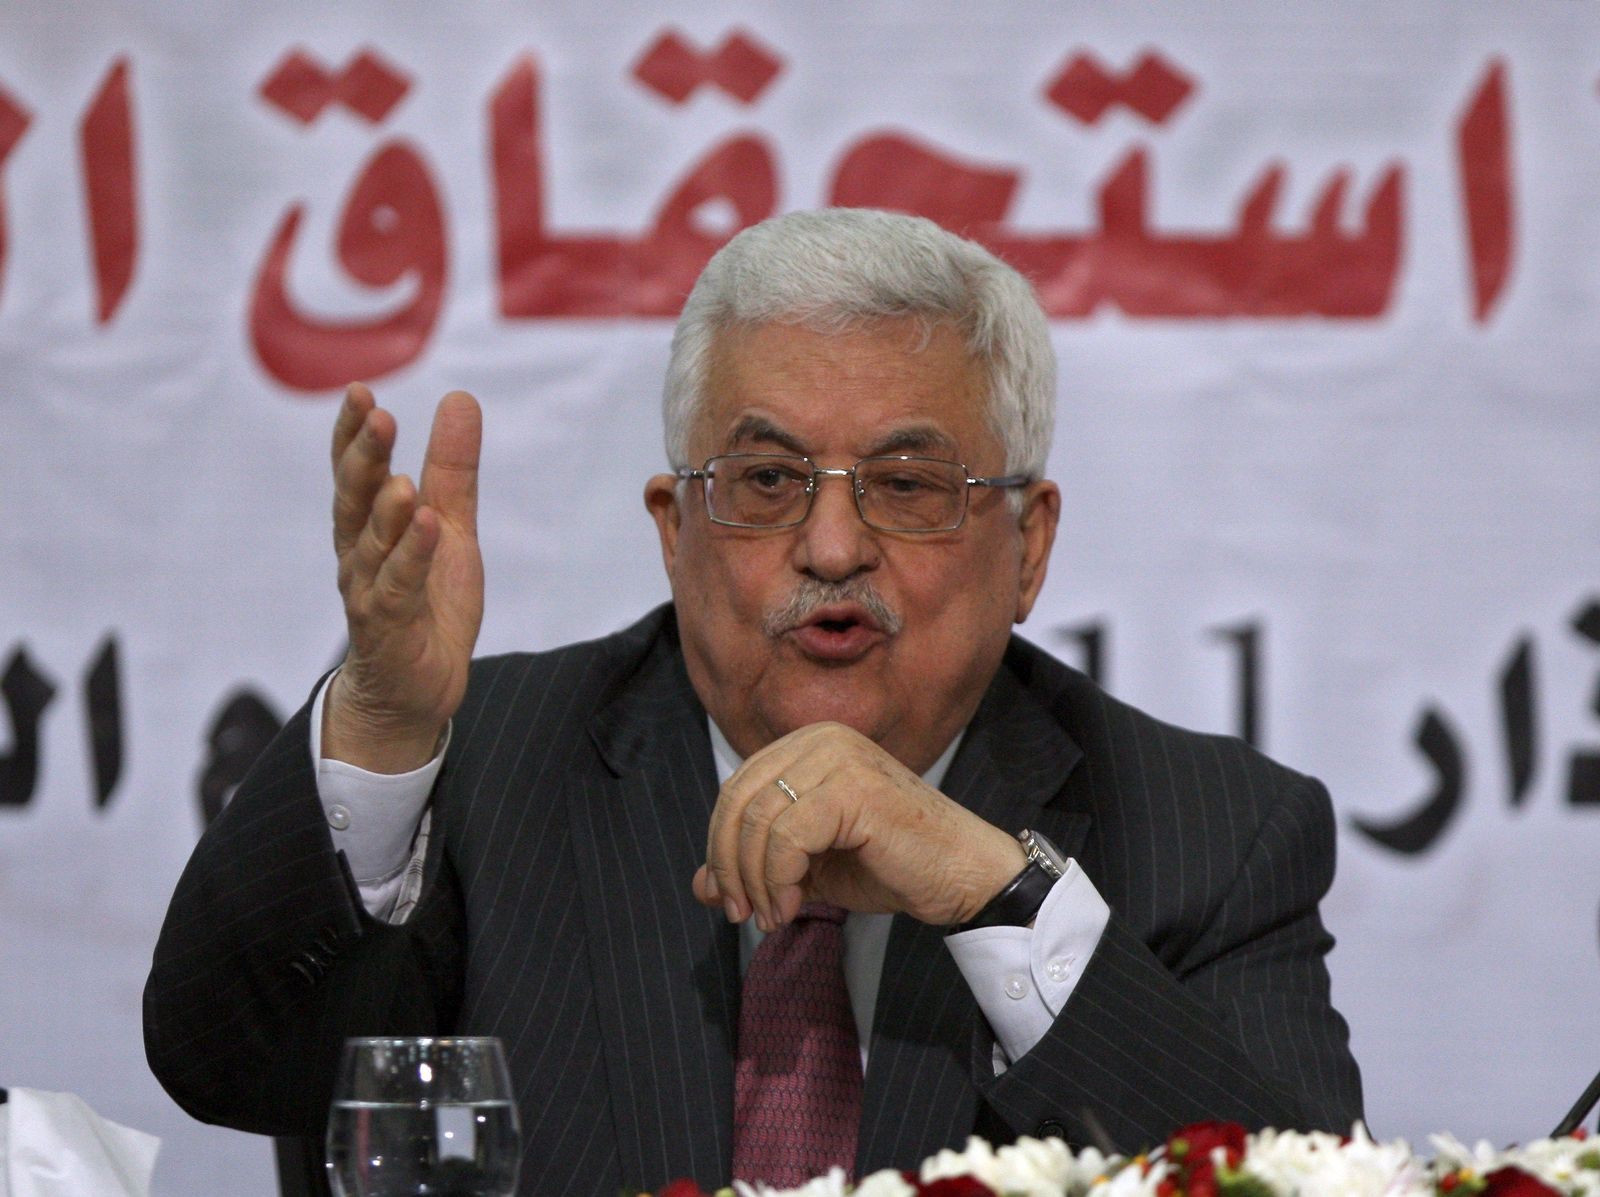 PALESTINIANS-POLITICS-HAMAS-FATAH-GOVERNMENT